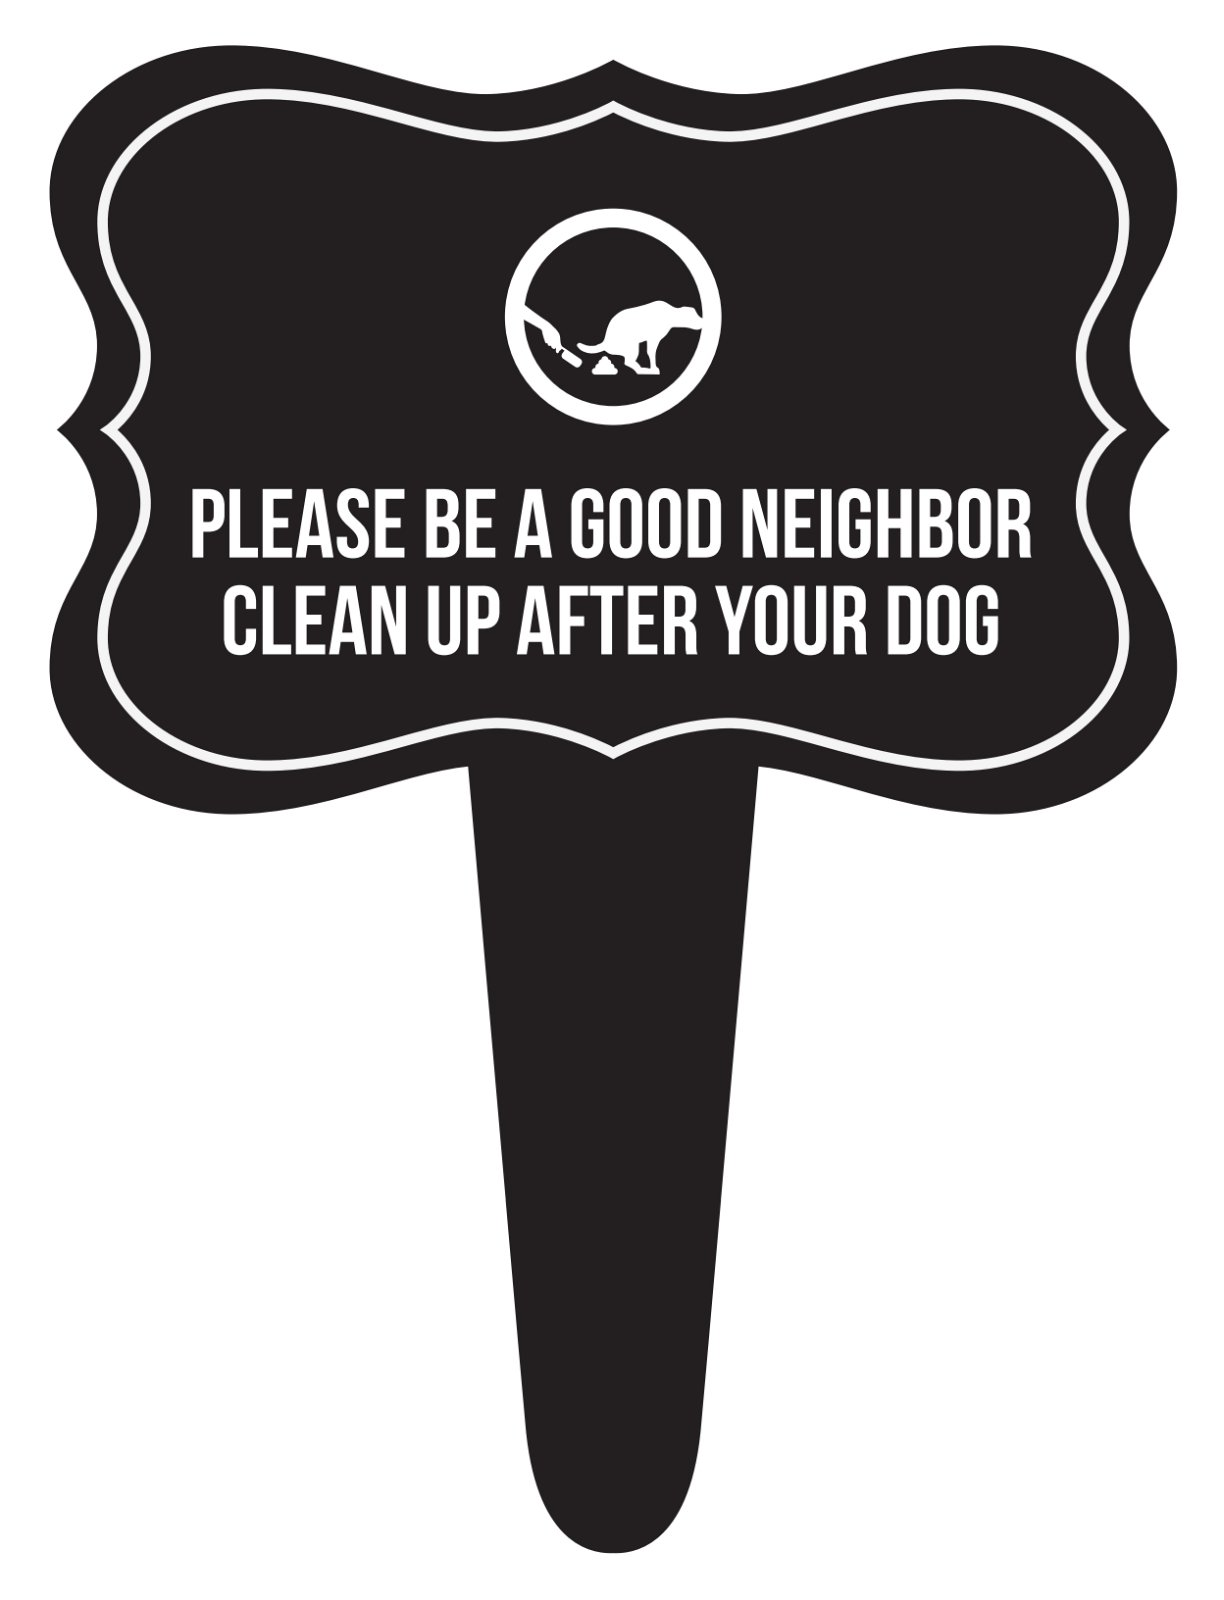 iCandy Combat Please Be A Good Neighbor Clean Up After Your Dog Home Yard Lawn Sign, Black, 12x16